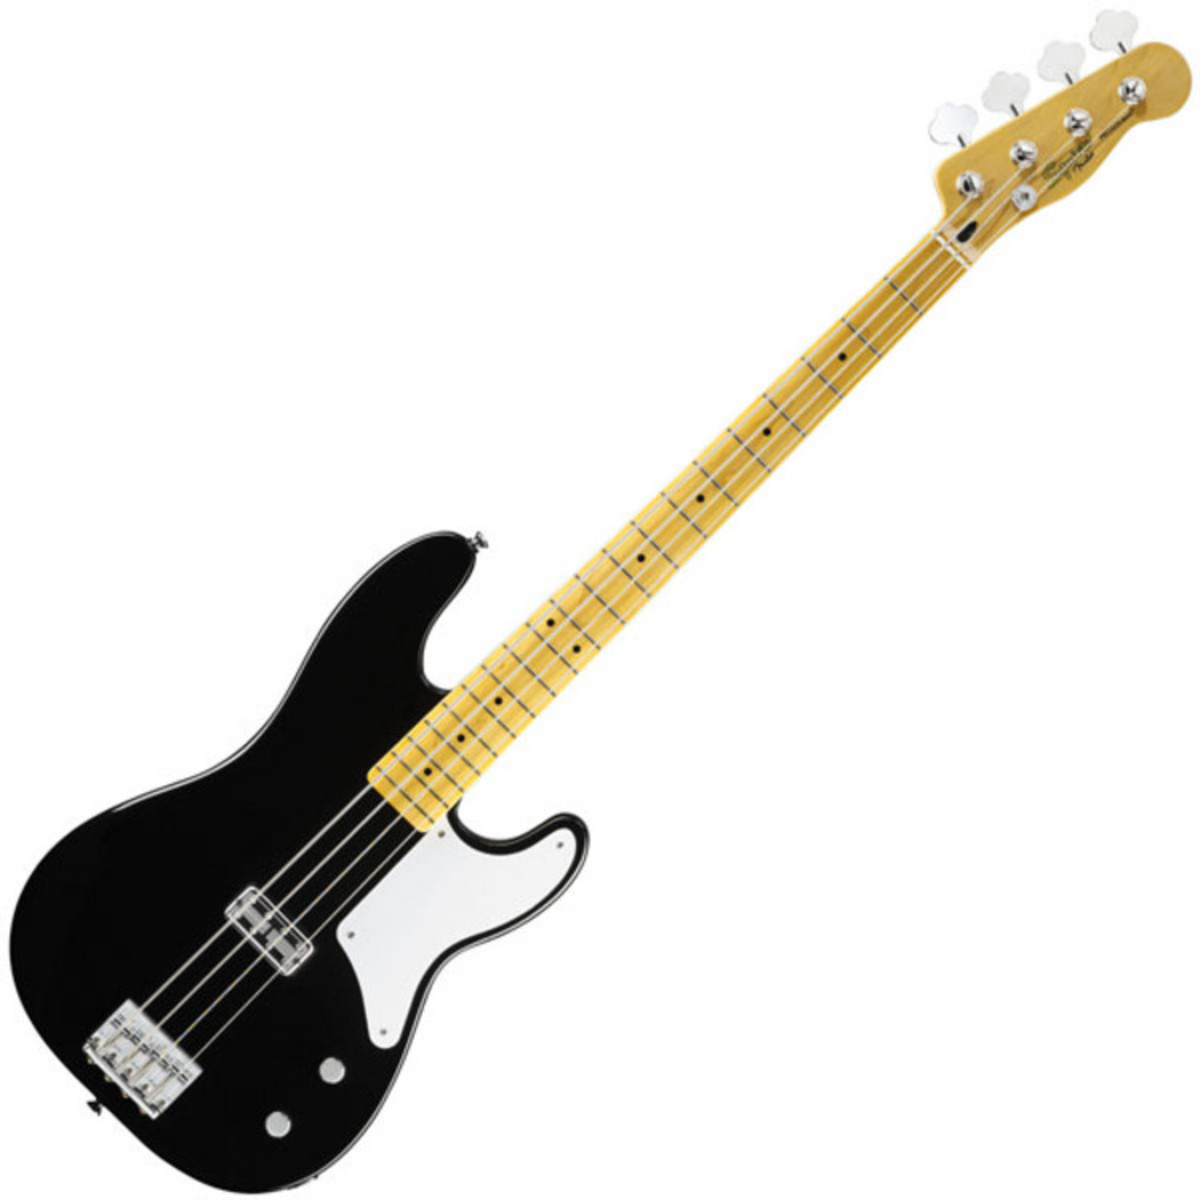 squier by fender vintage modified cabronita telecaster bass black at gear4music. Black Bedroom Furniture Sets. Home Design Ideas